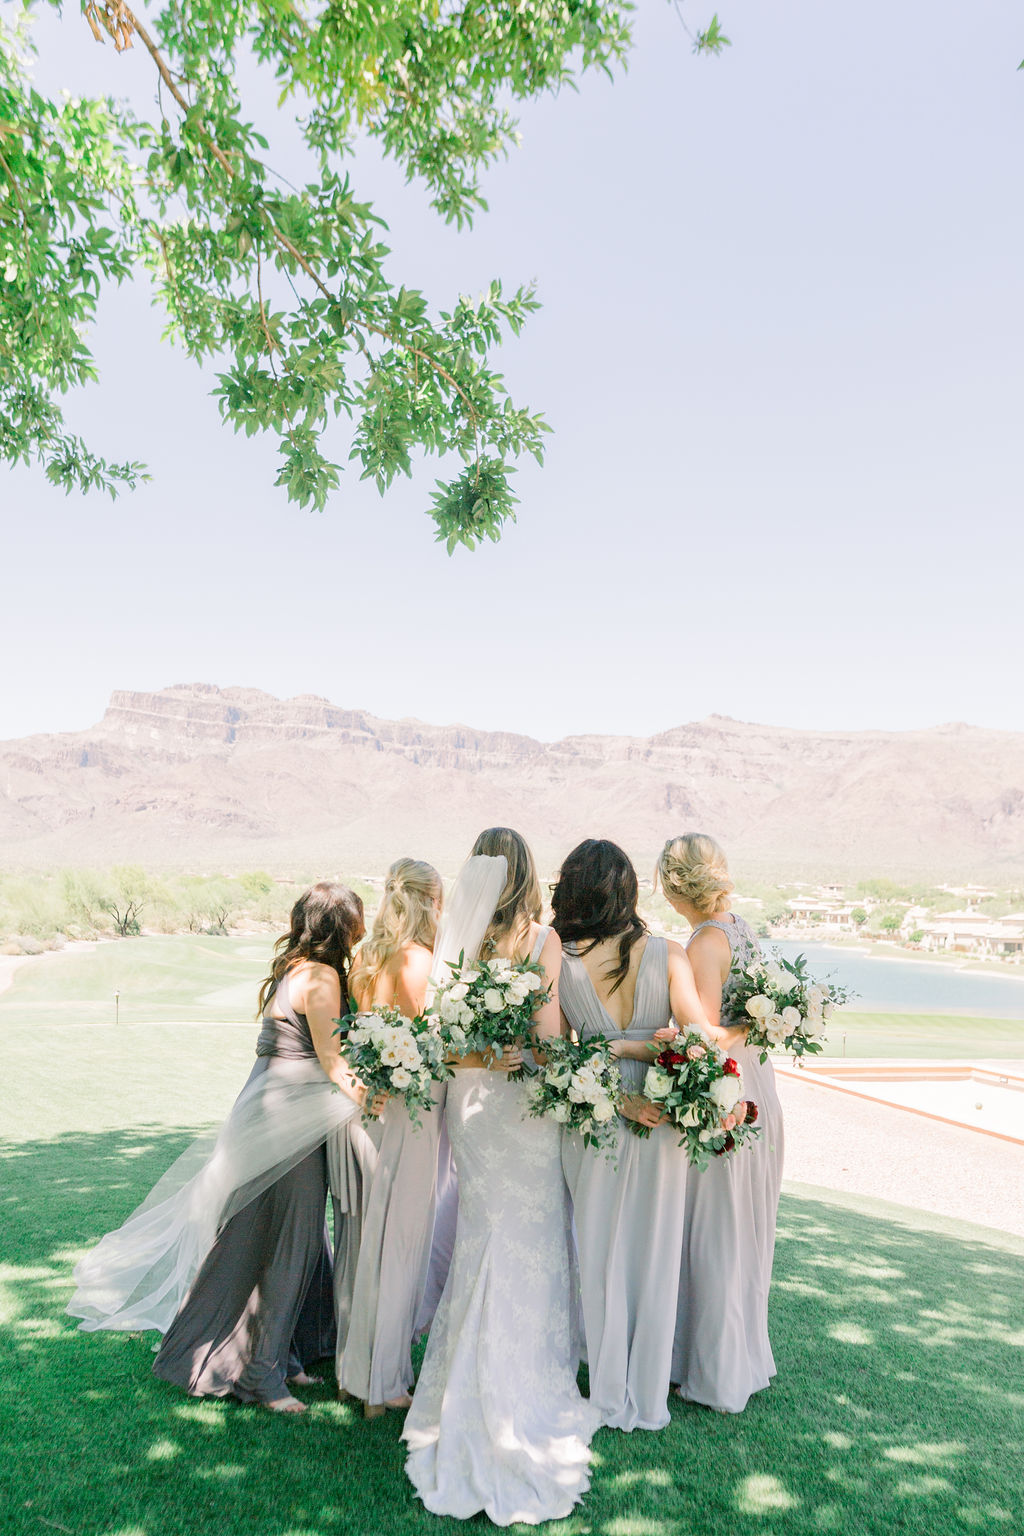 Superstition Mountain Destination Wedding - Arizona Wedding Florist - Phoenix, Scottsdale, Sedona - Bridesmaid Style Inspiration - Mixed Grey Gowns - All white bridesmaids' bouquets